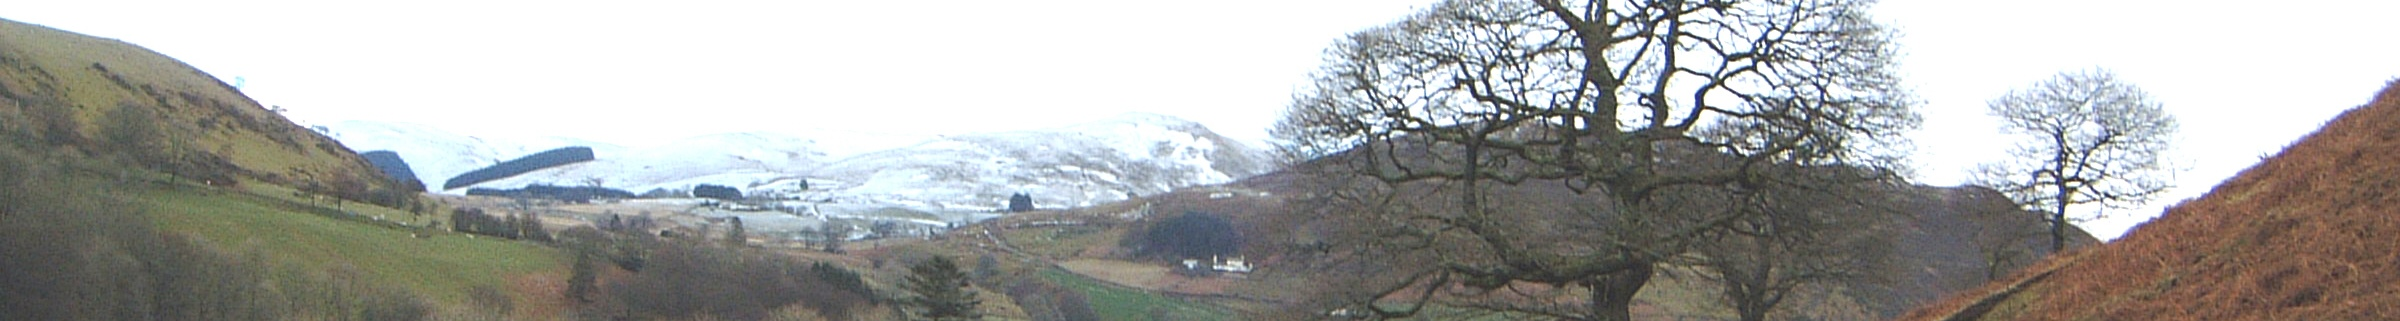 Snow on the hills above Cwmystwyth